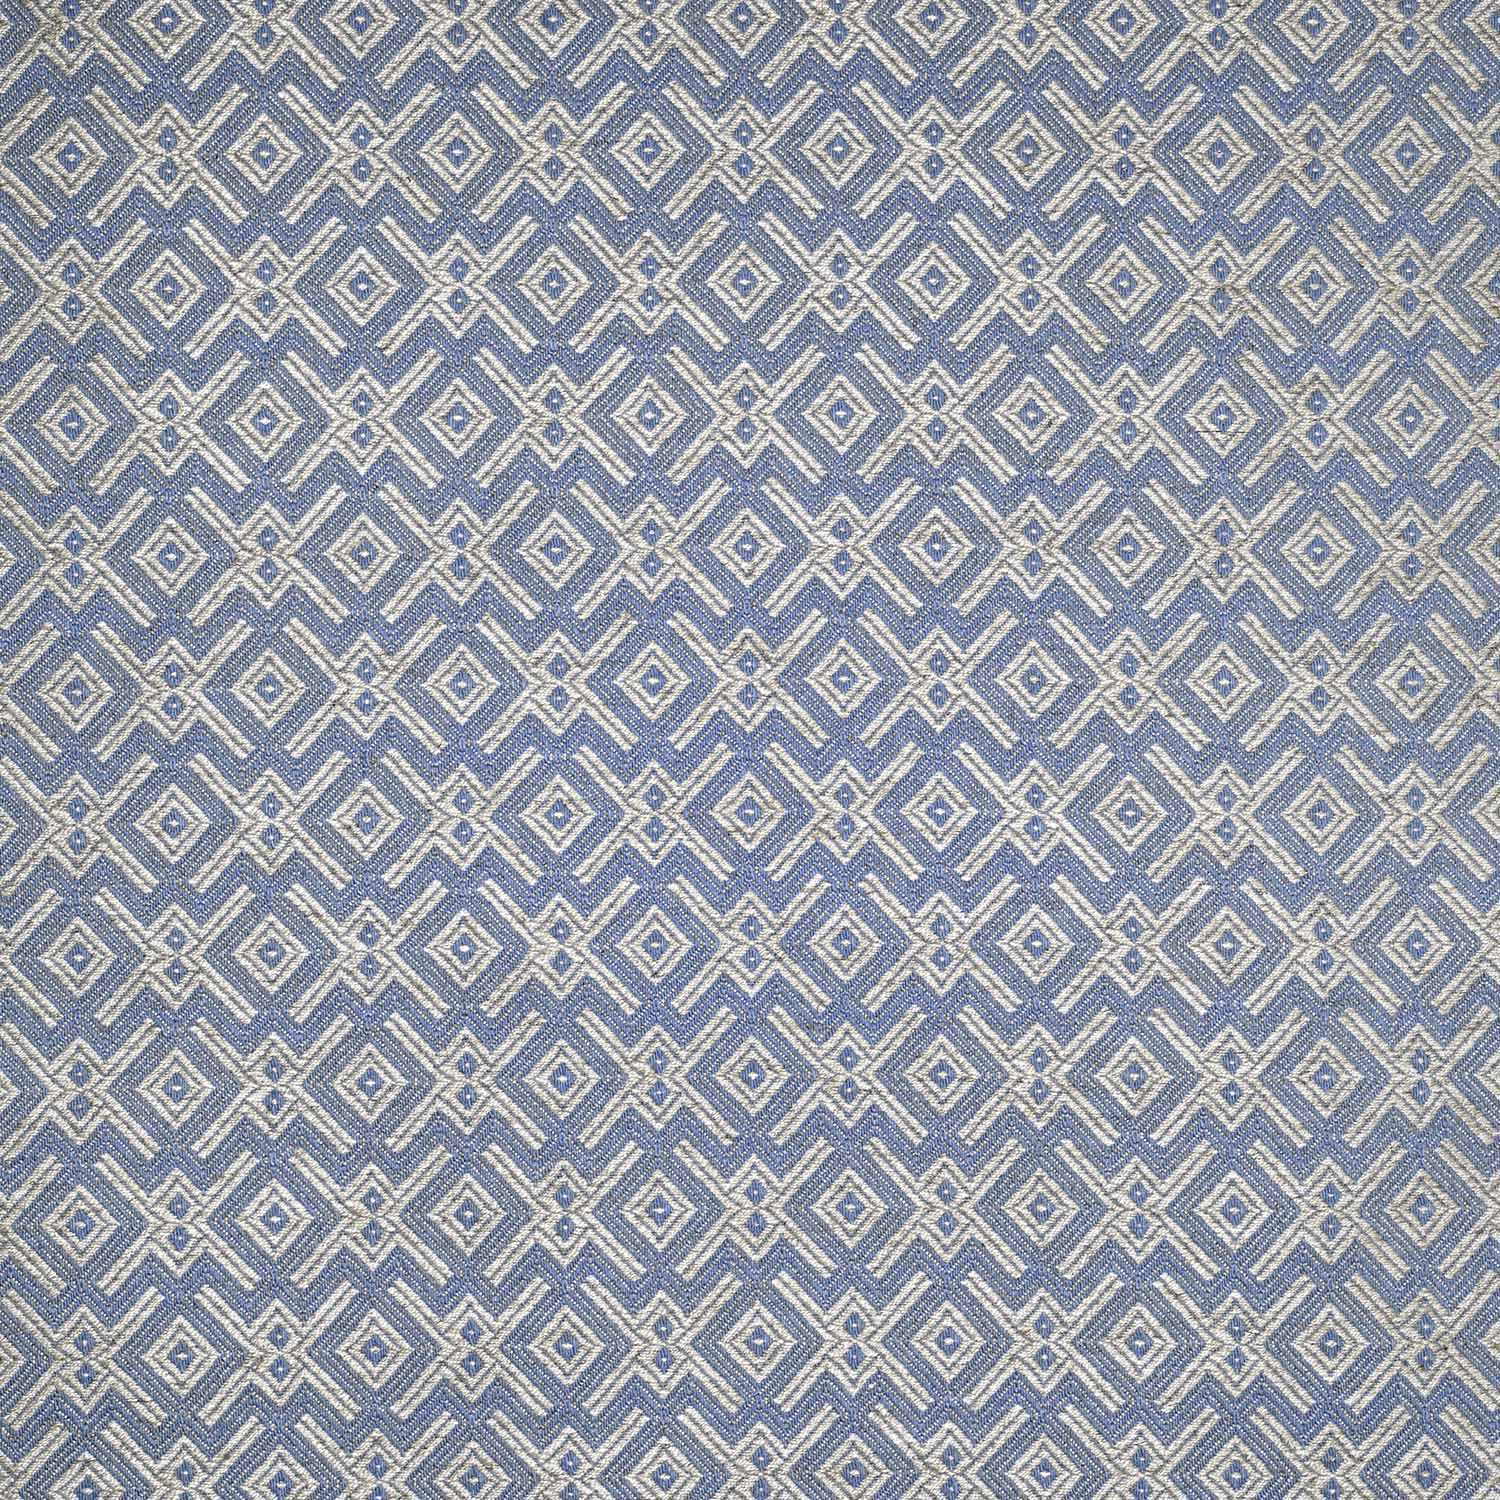 <p><strong>AMESBURY REVERSE</strong>blue 1310-01<a href=/the-winthorp-collection/amersbury-reverse-blue-1310-01>More →</a></p>